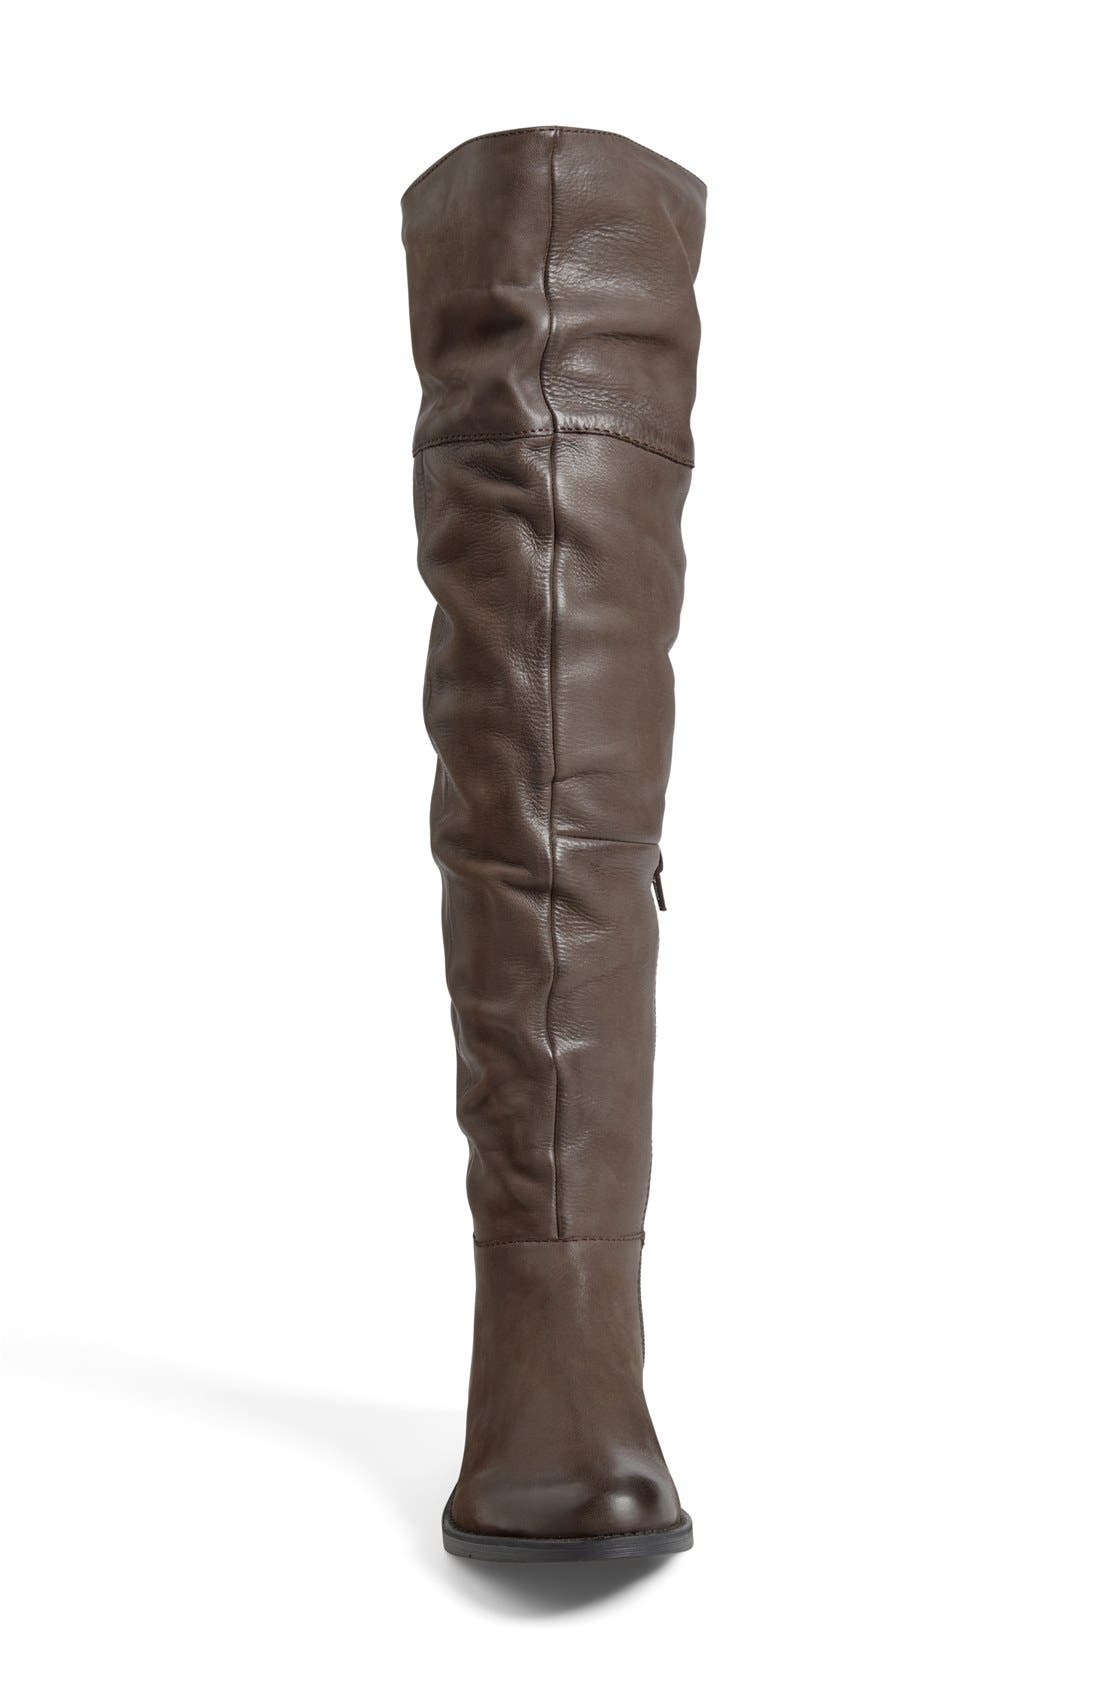 'Heisnbrg' Leather Over the Knee Boot,                             Alternate thumbnail 4, color,                             Brown Leather